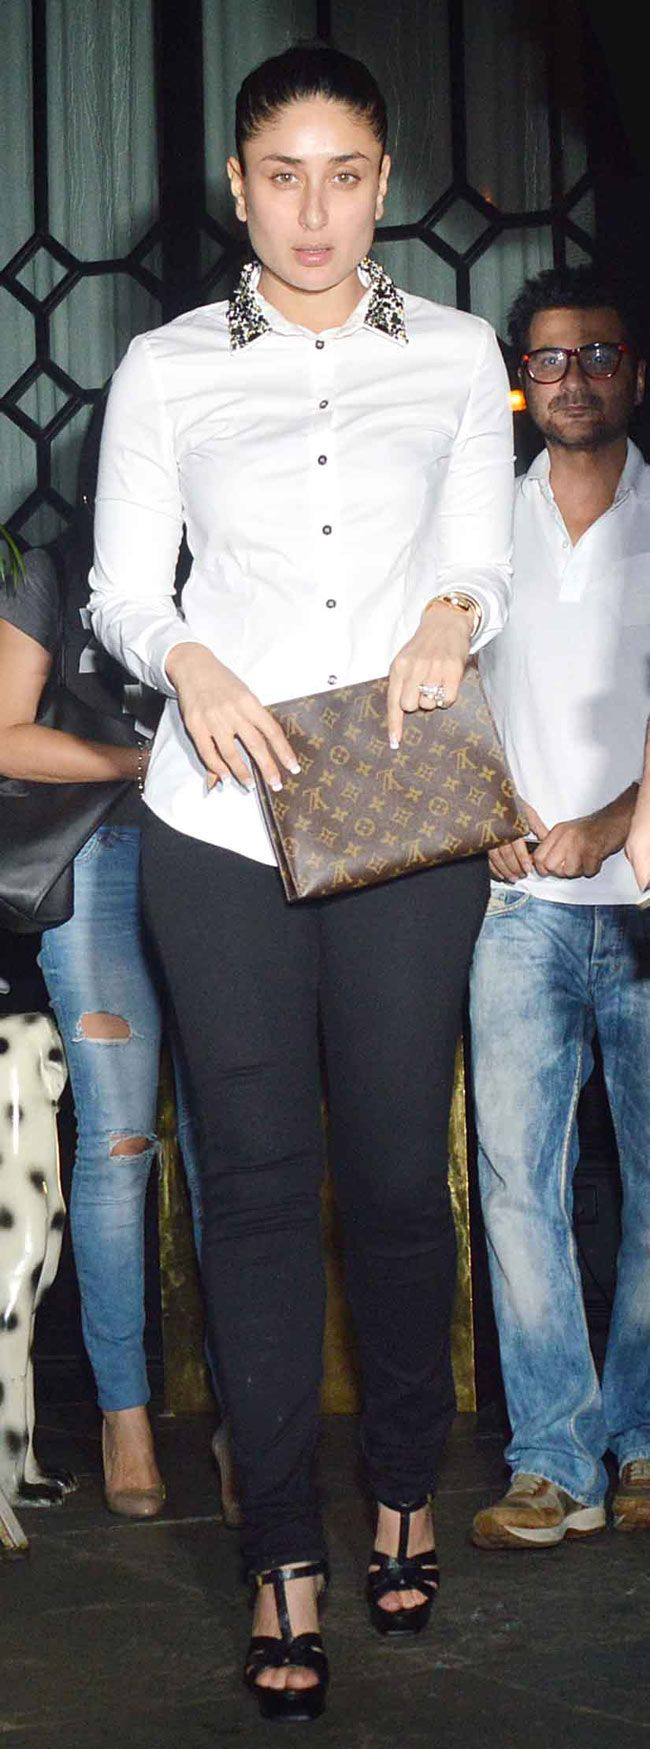 Kareena Kapoor Khan, also in picture: Sanjay Kapoor clicked exiting popular Mumbai nightspot, Nido.